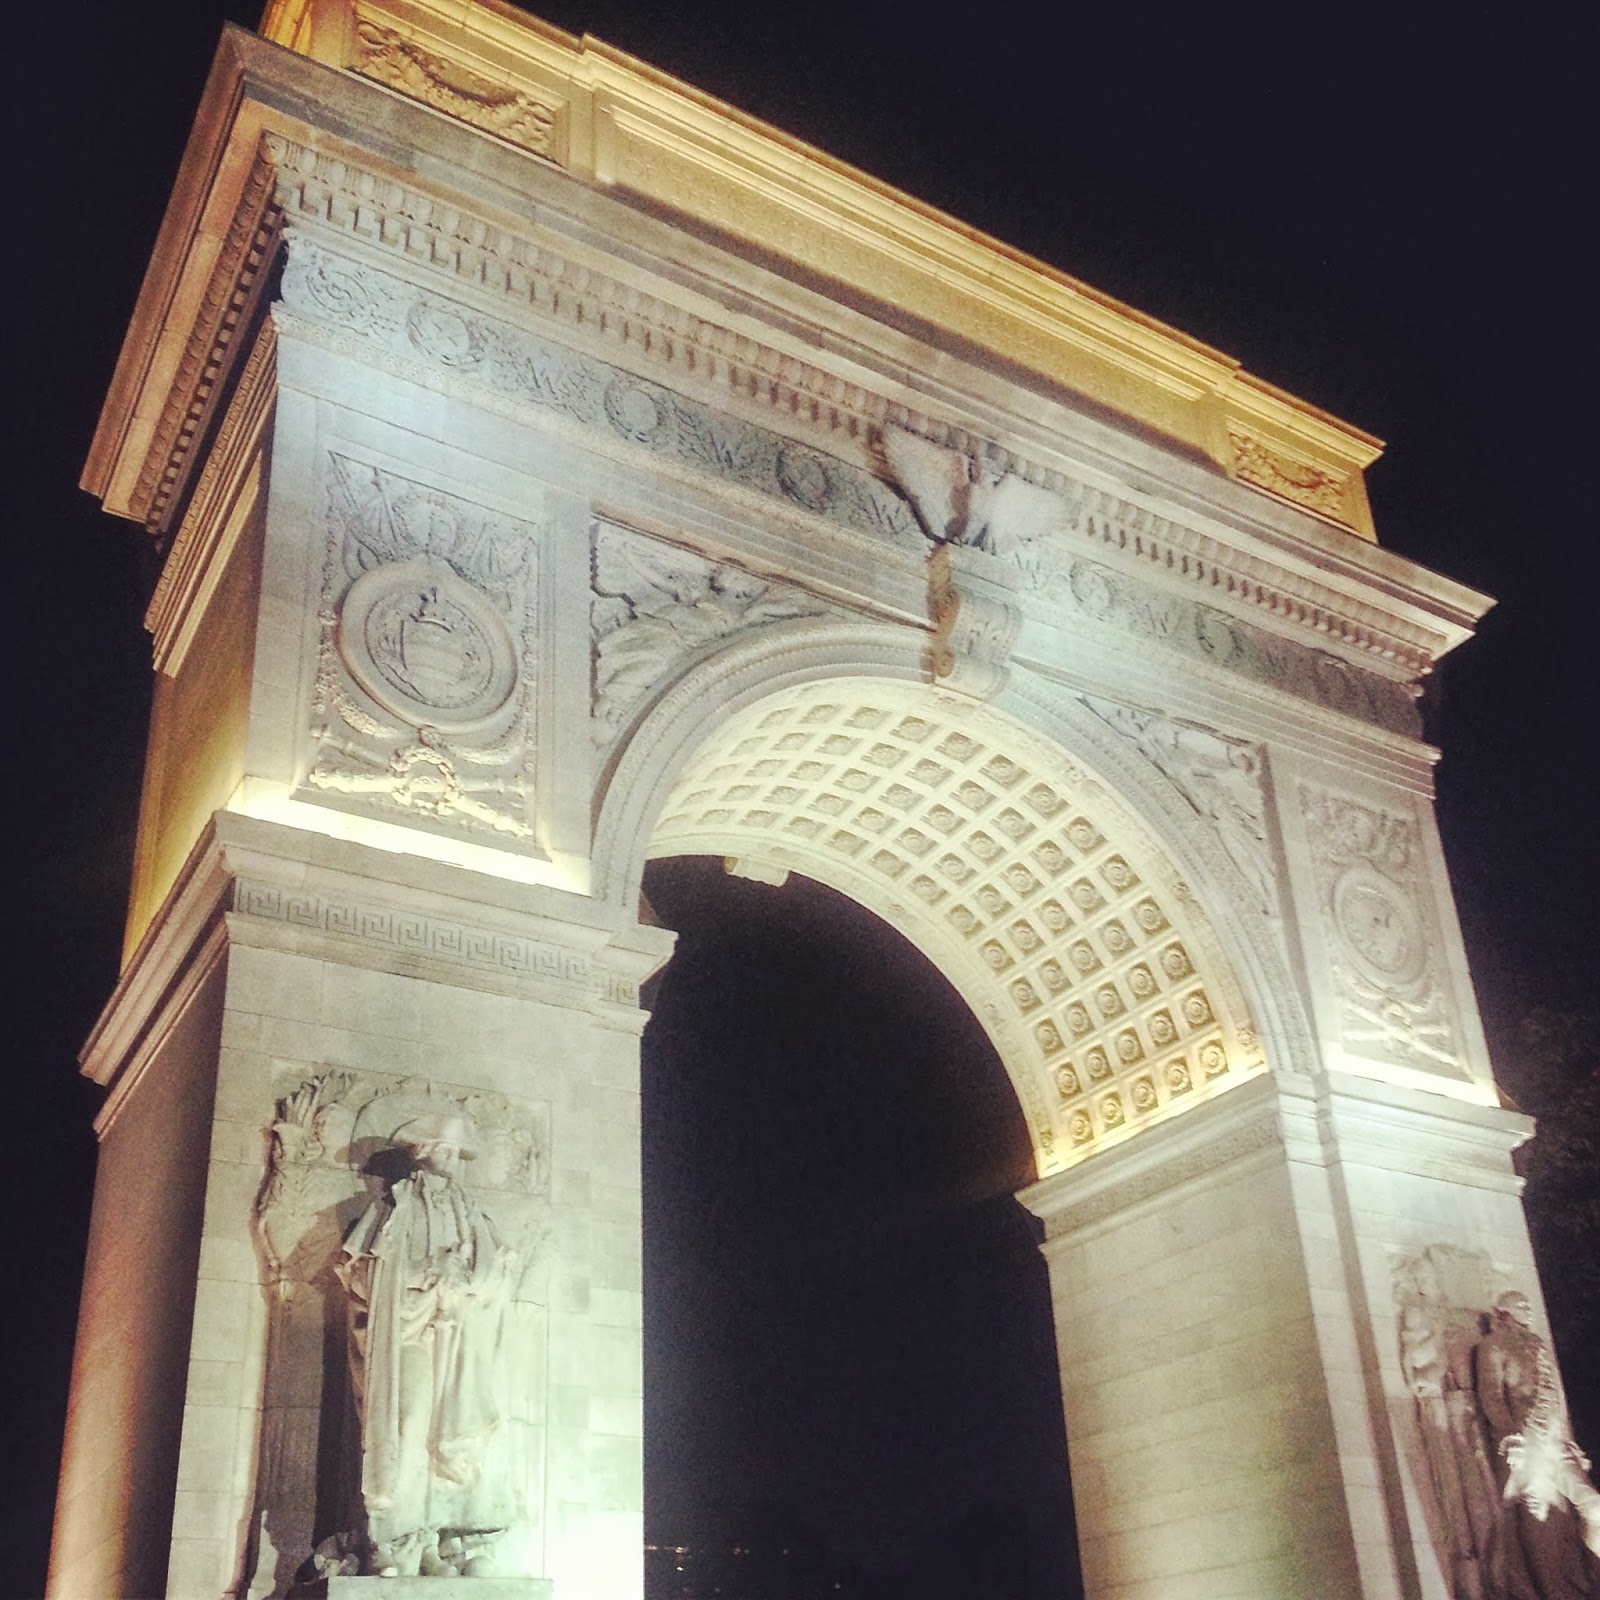 Washington Square Park Arch by night  |  Neighborly |  http://afeatherynest.blogspot.com